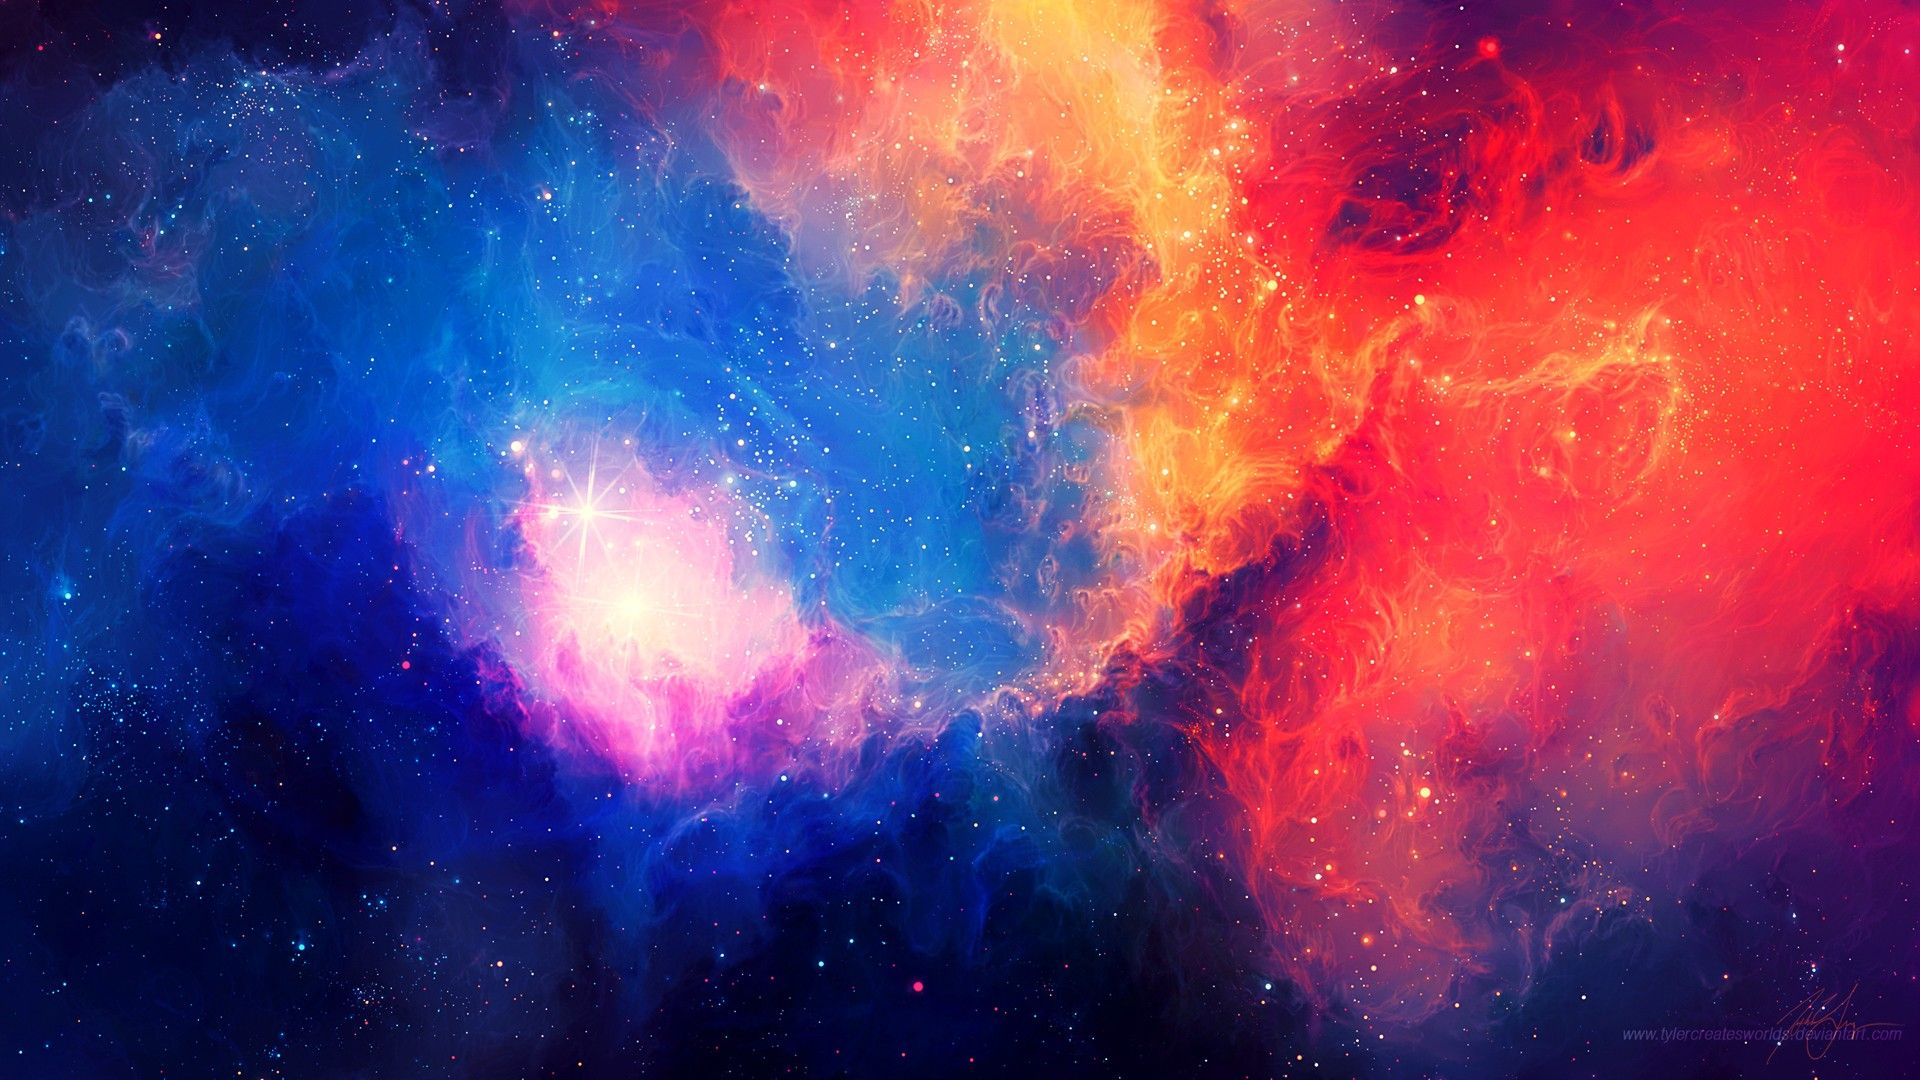 Colorful Galaxy Wallpapers For Iphone Galaxy Wallpaper Hd Galaxy Wallpaper Galaxy Images